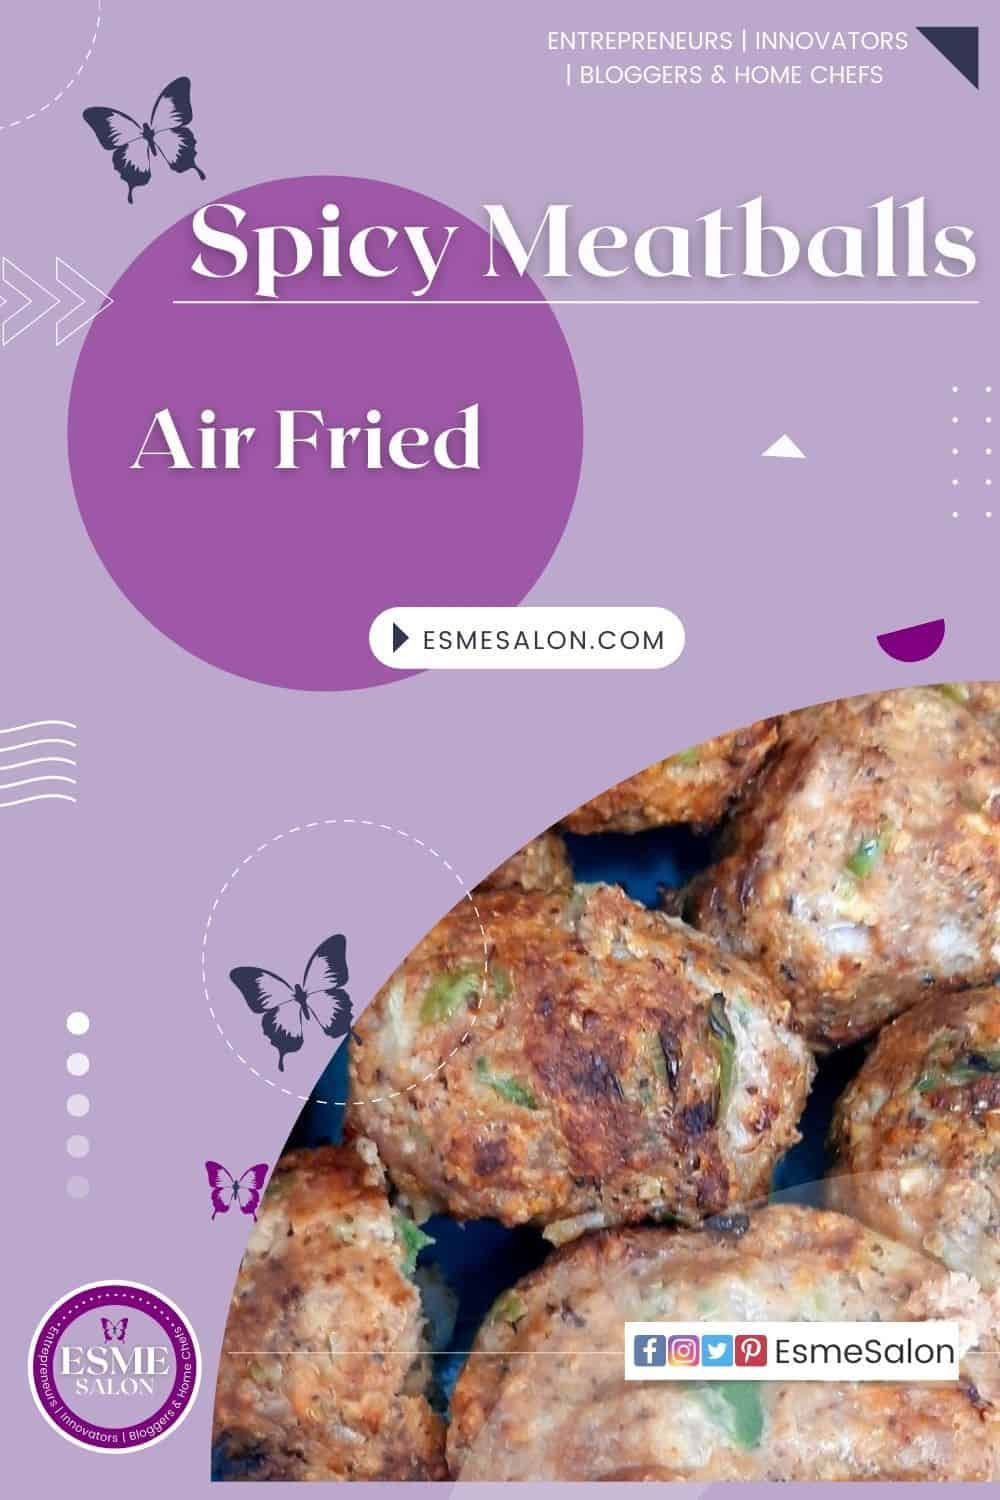 Fried Meatballs with chopped coriander and spices